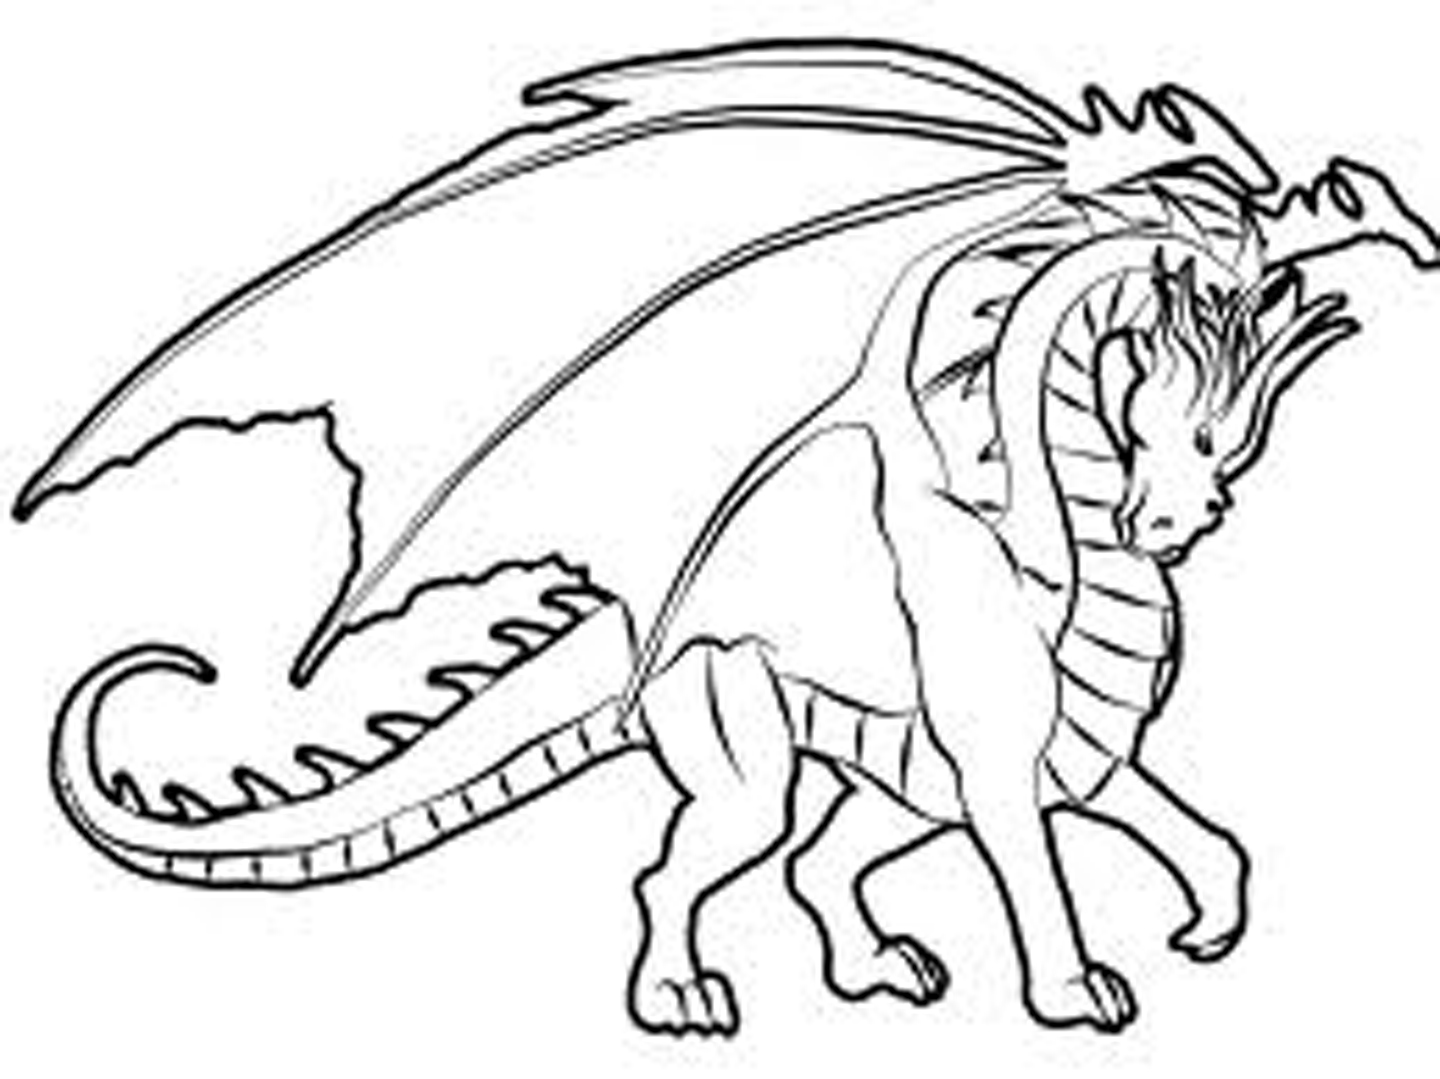 Lovely Kids Free Coloring Pages 72 About Remodel Free Coloring